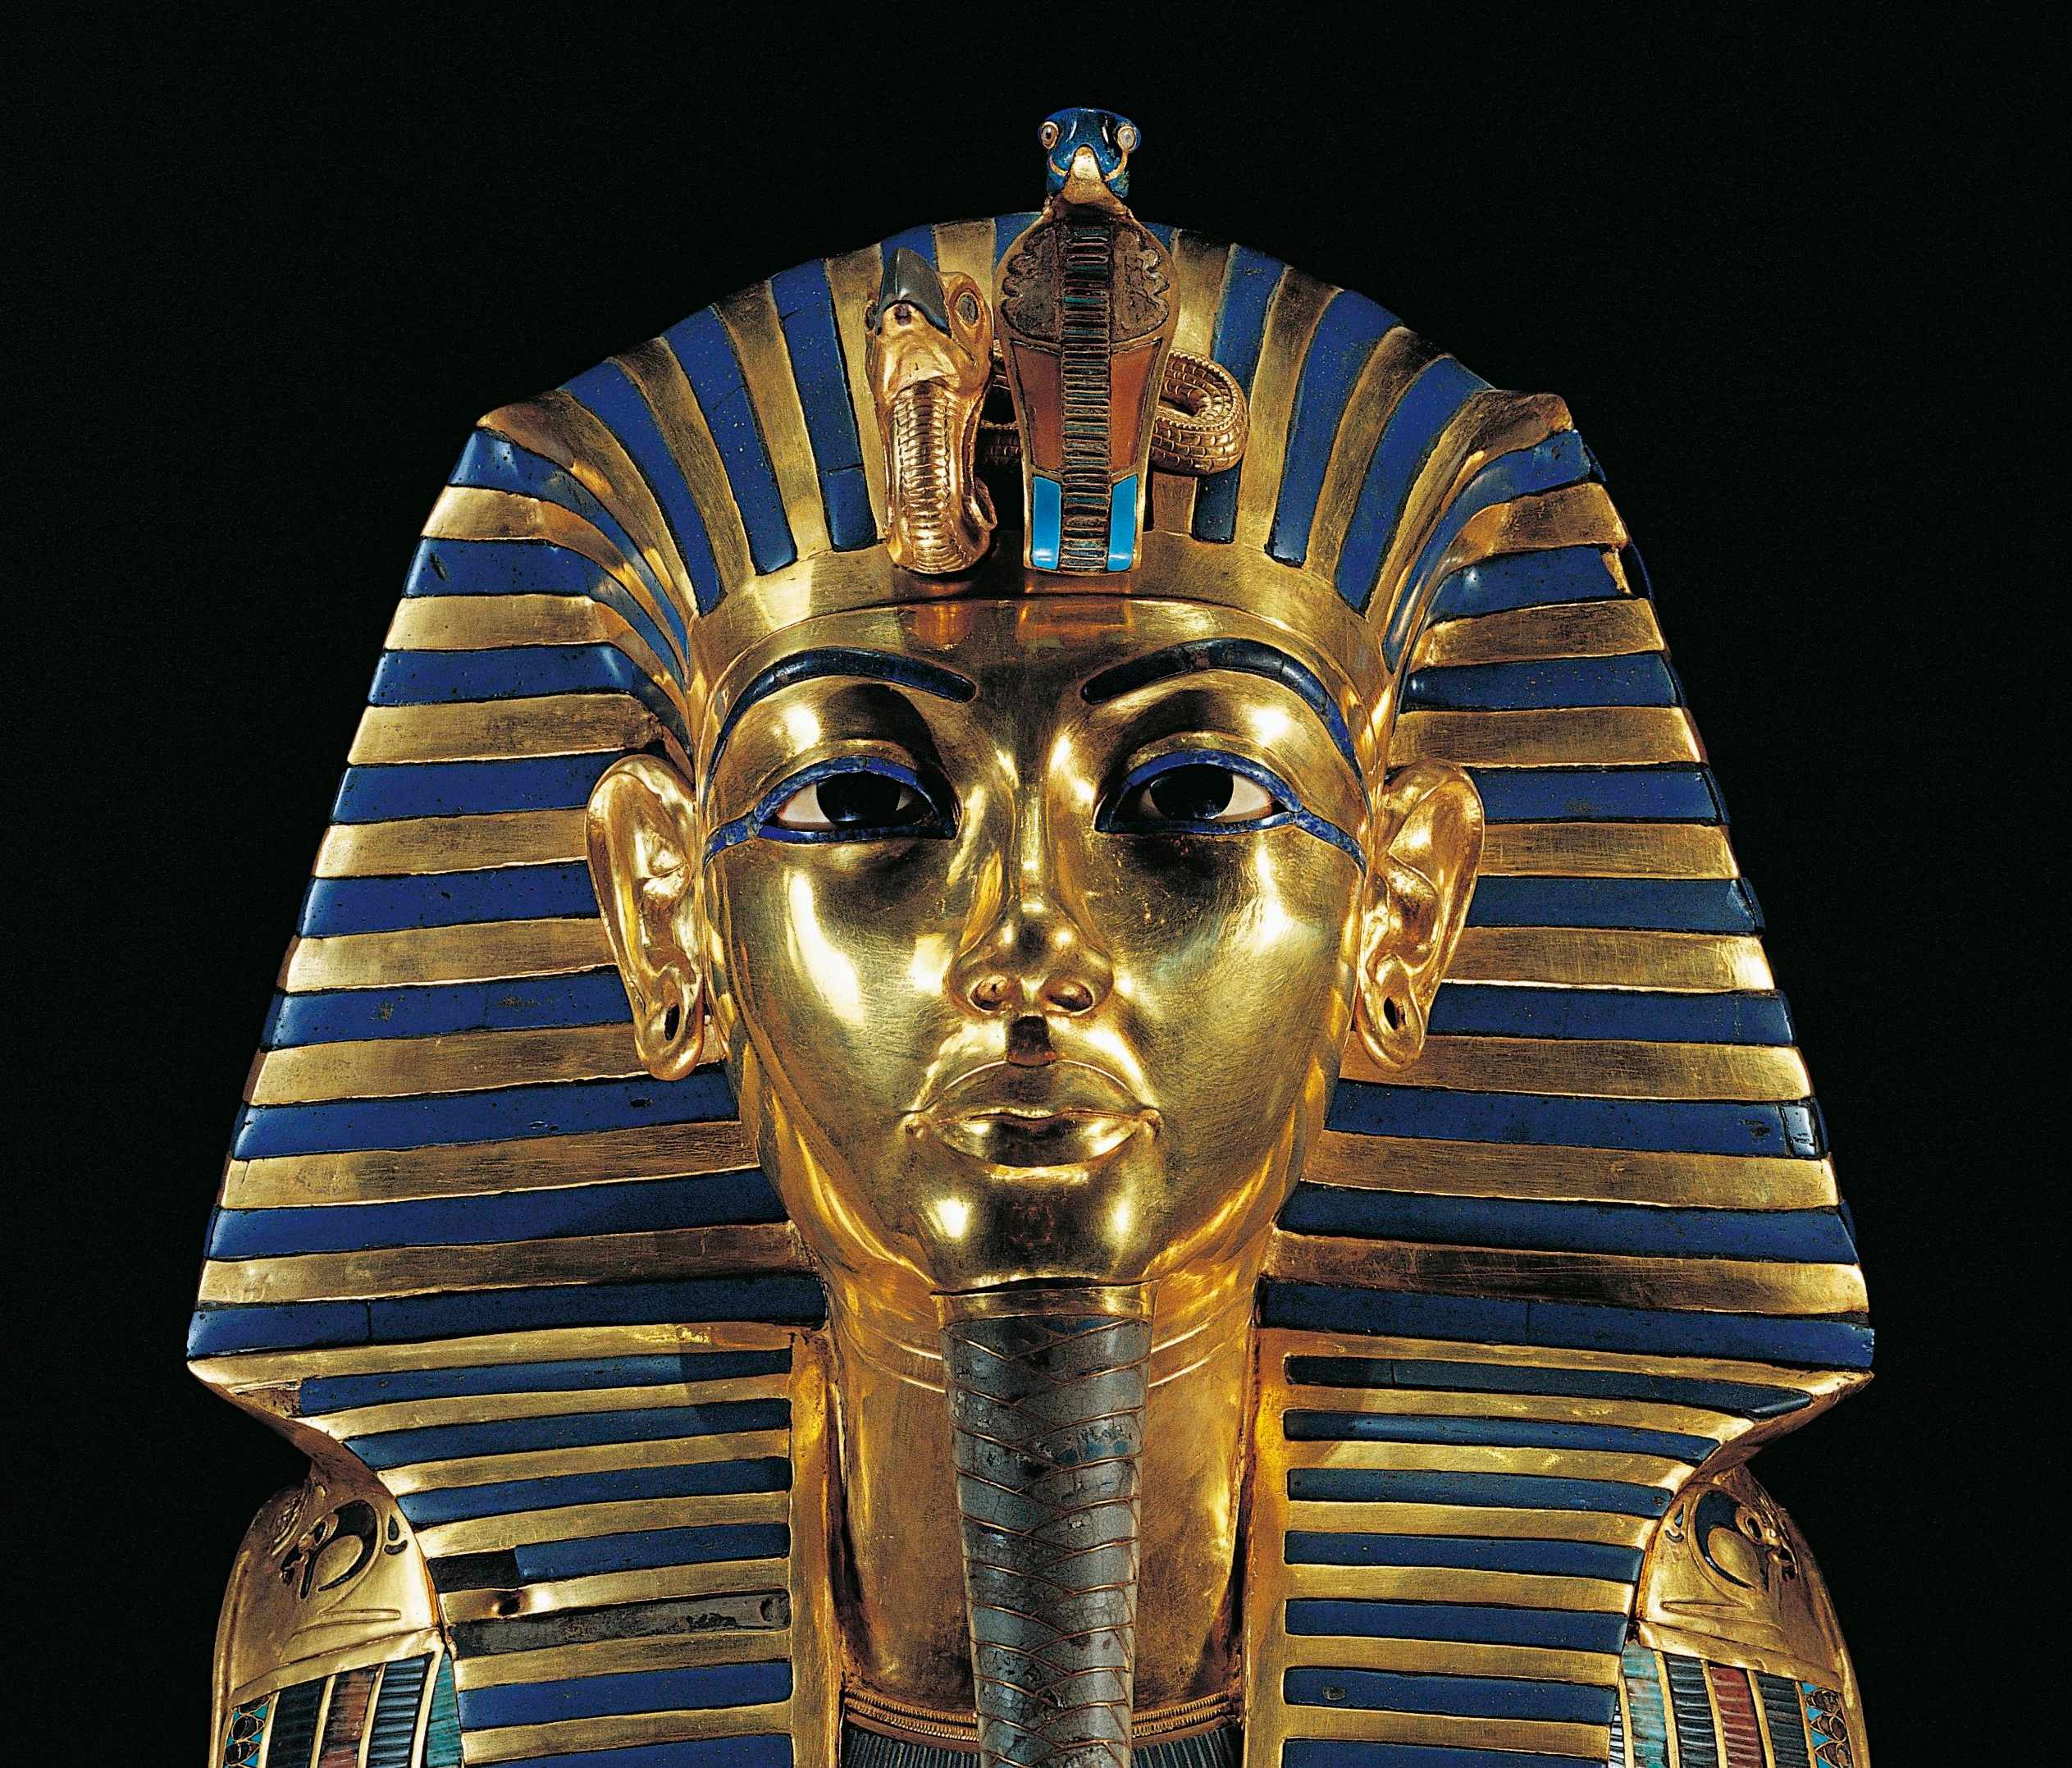 Golden funerary mask of Tutankhamun, inlaid with lapis lazuli, obsidian and turquoise. (Photo By DEA / G. DAGLI ORTI/De Agostini/Getty Images)